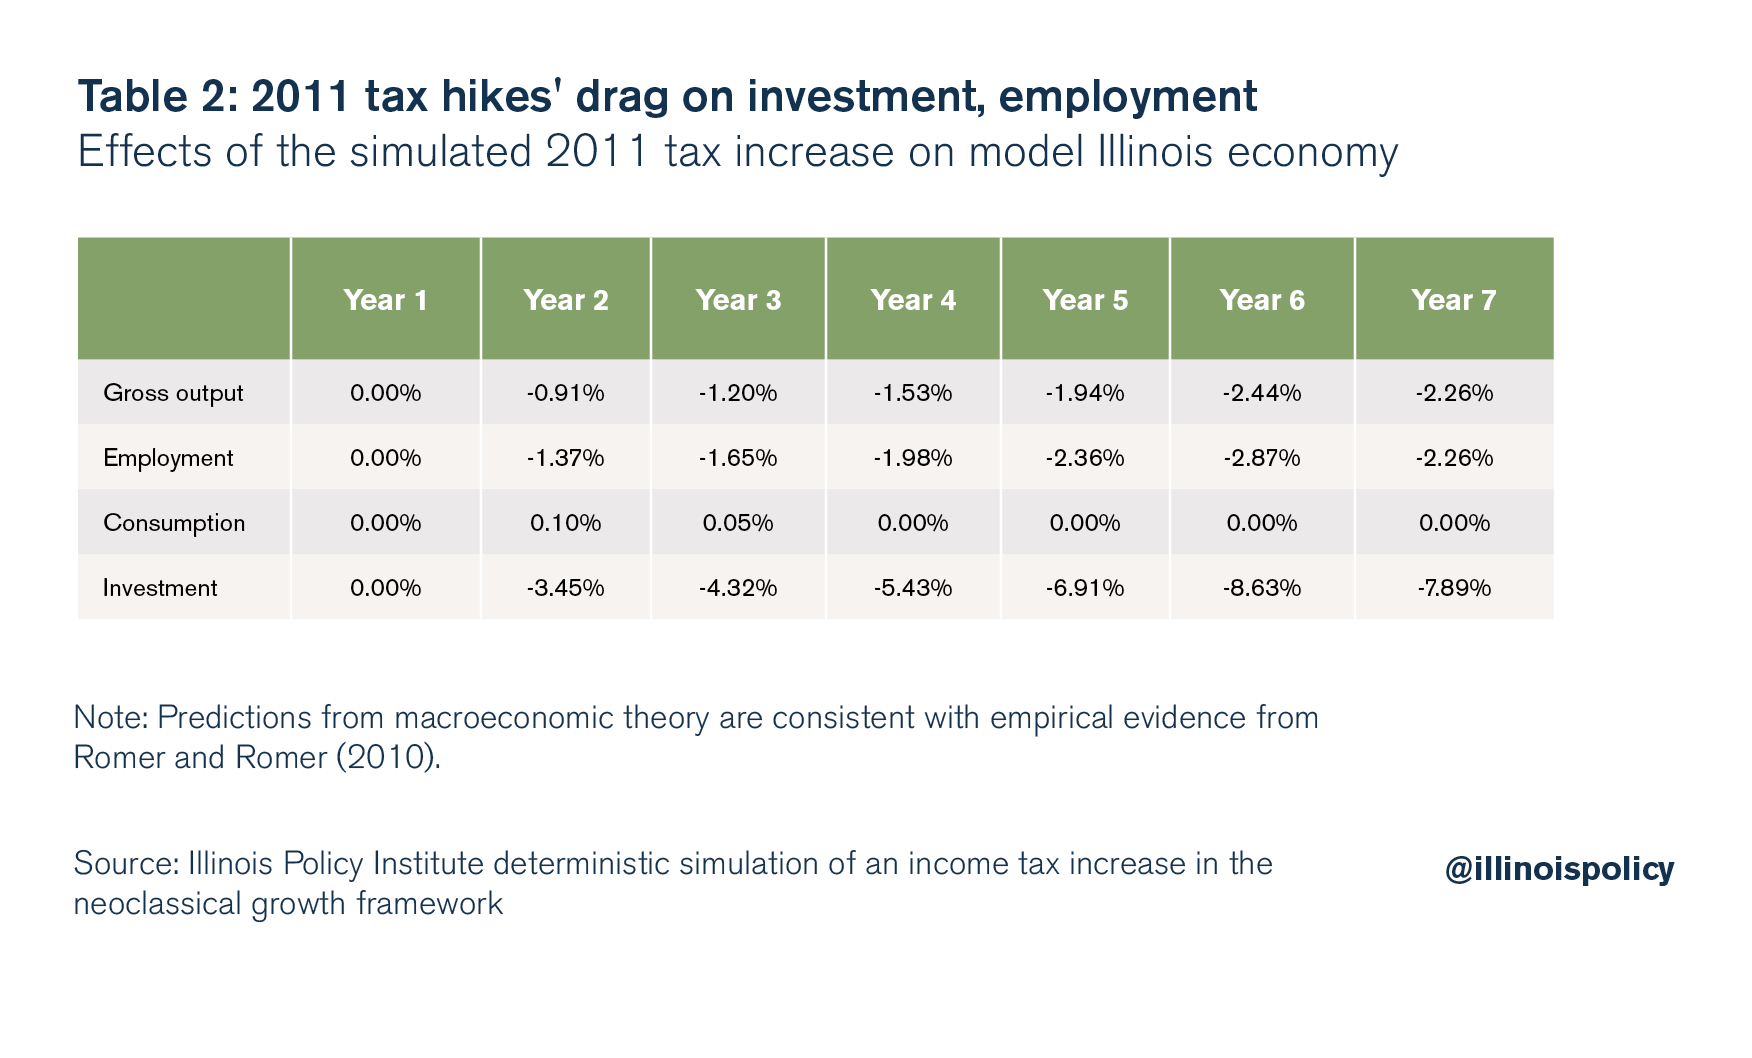 2011 tax hikes' drag on investment, employment